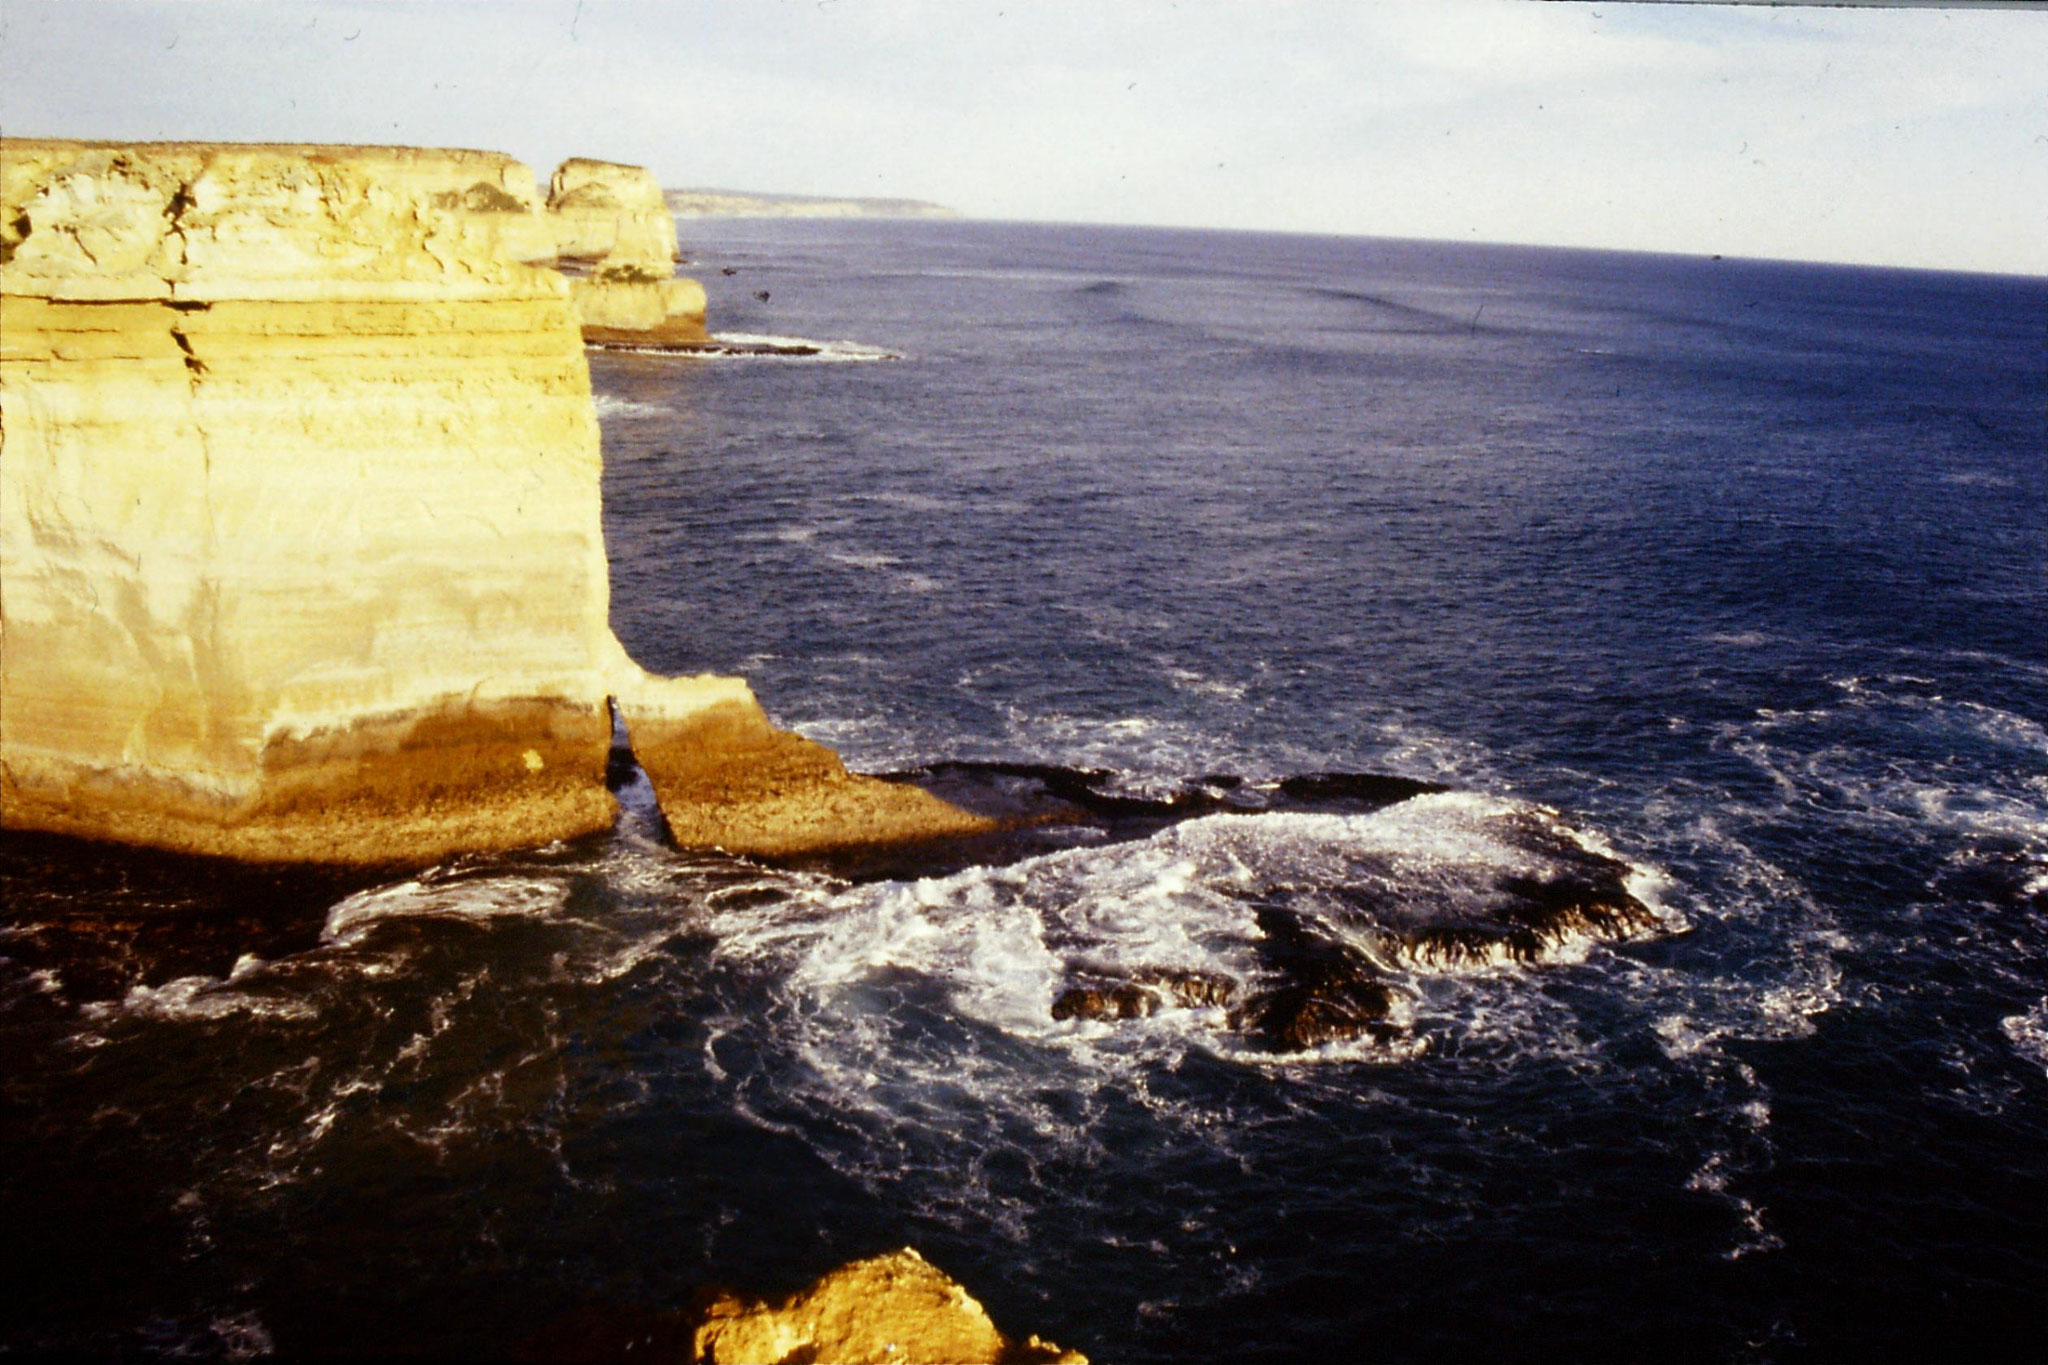 19/9/1990: 26: SE from Loch Ard Gorge